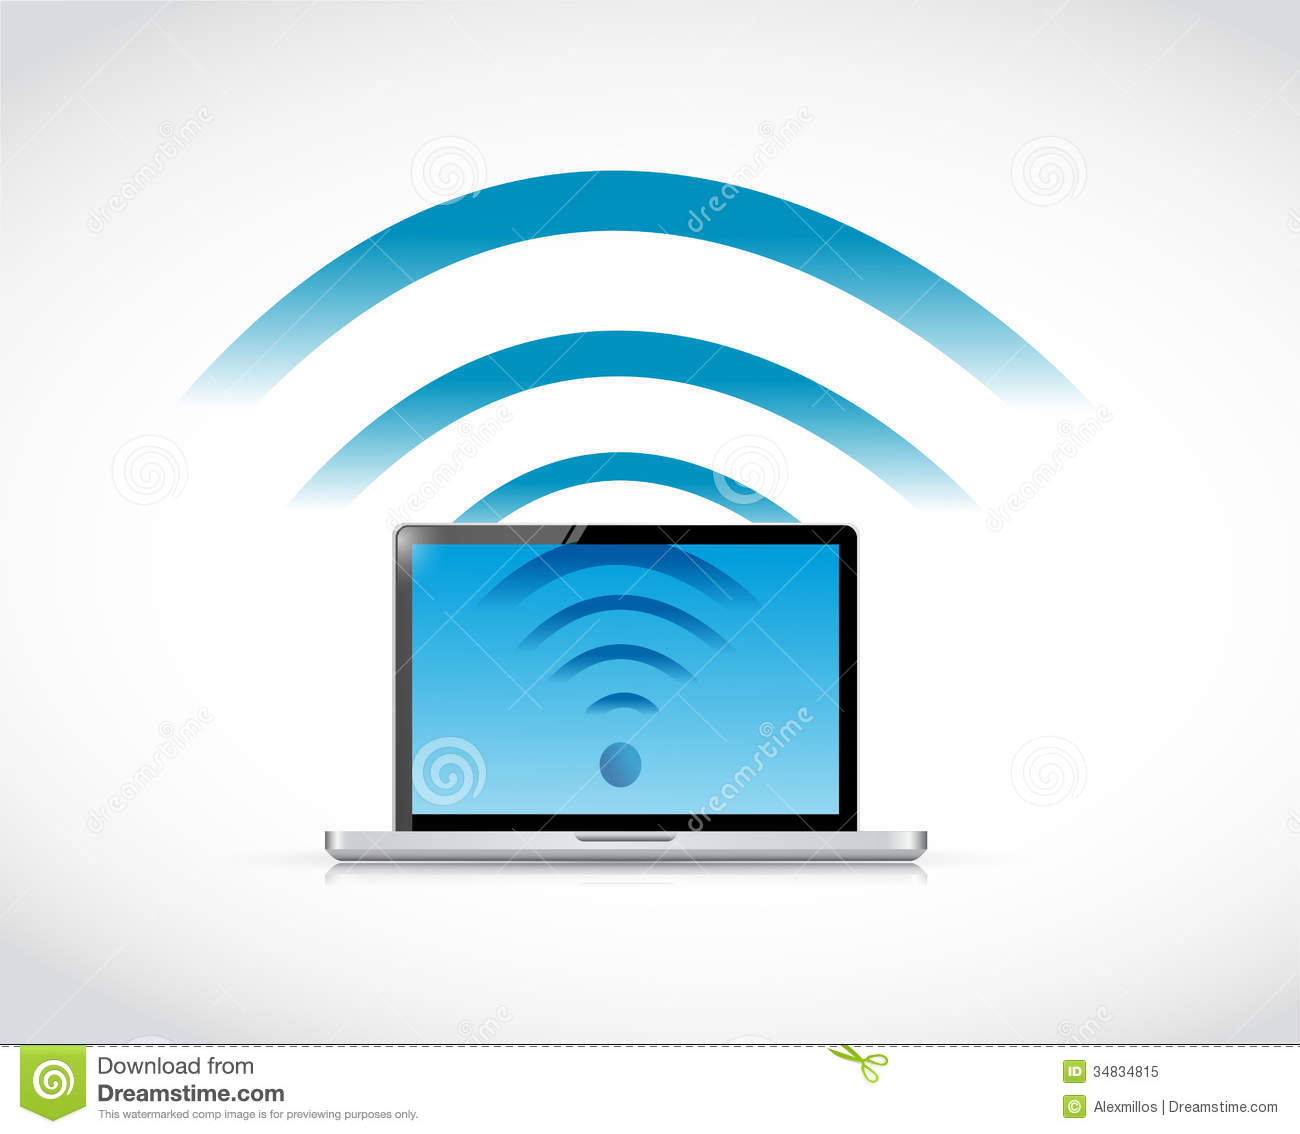 how to set wifi connection in laptop